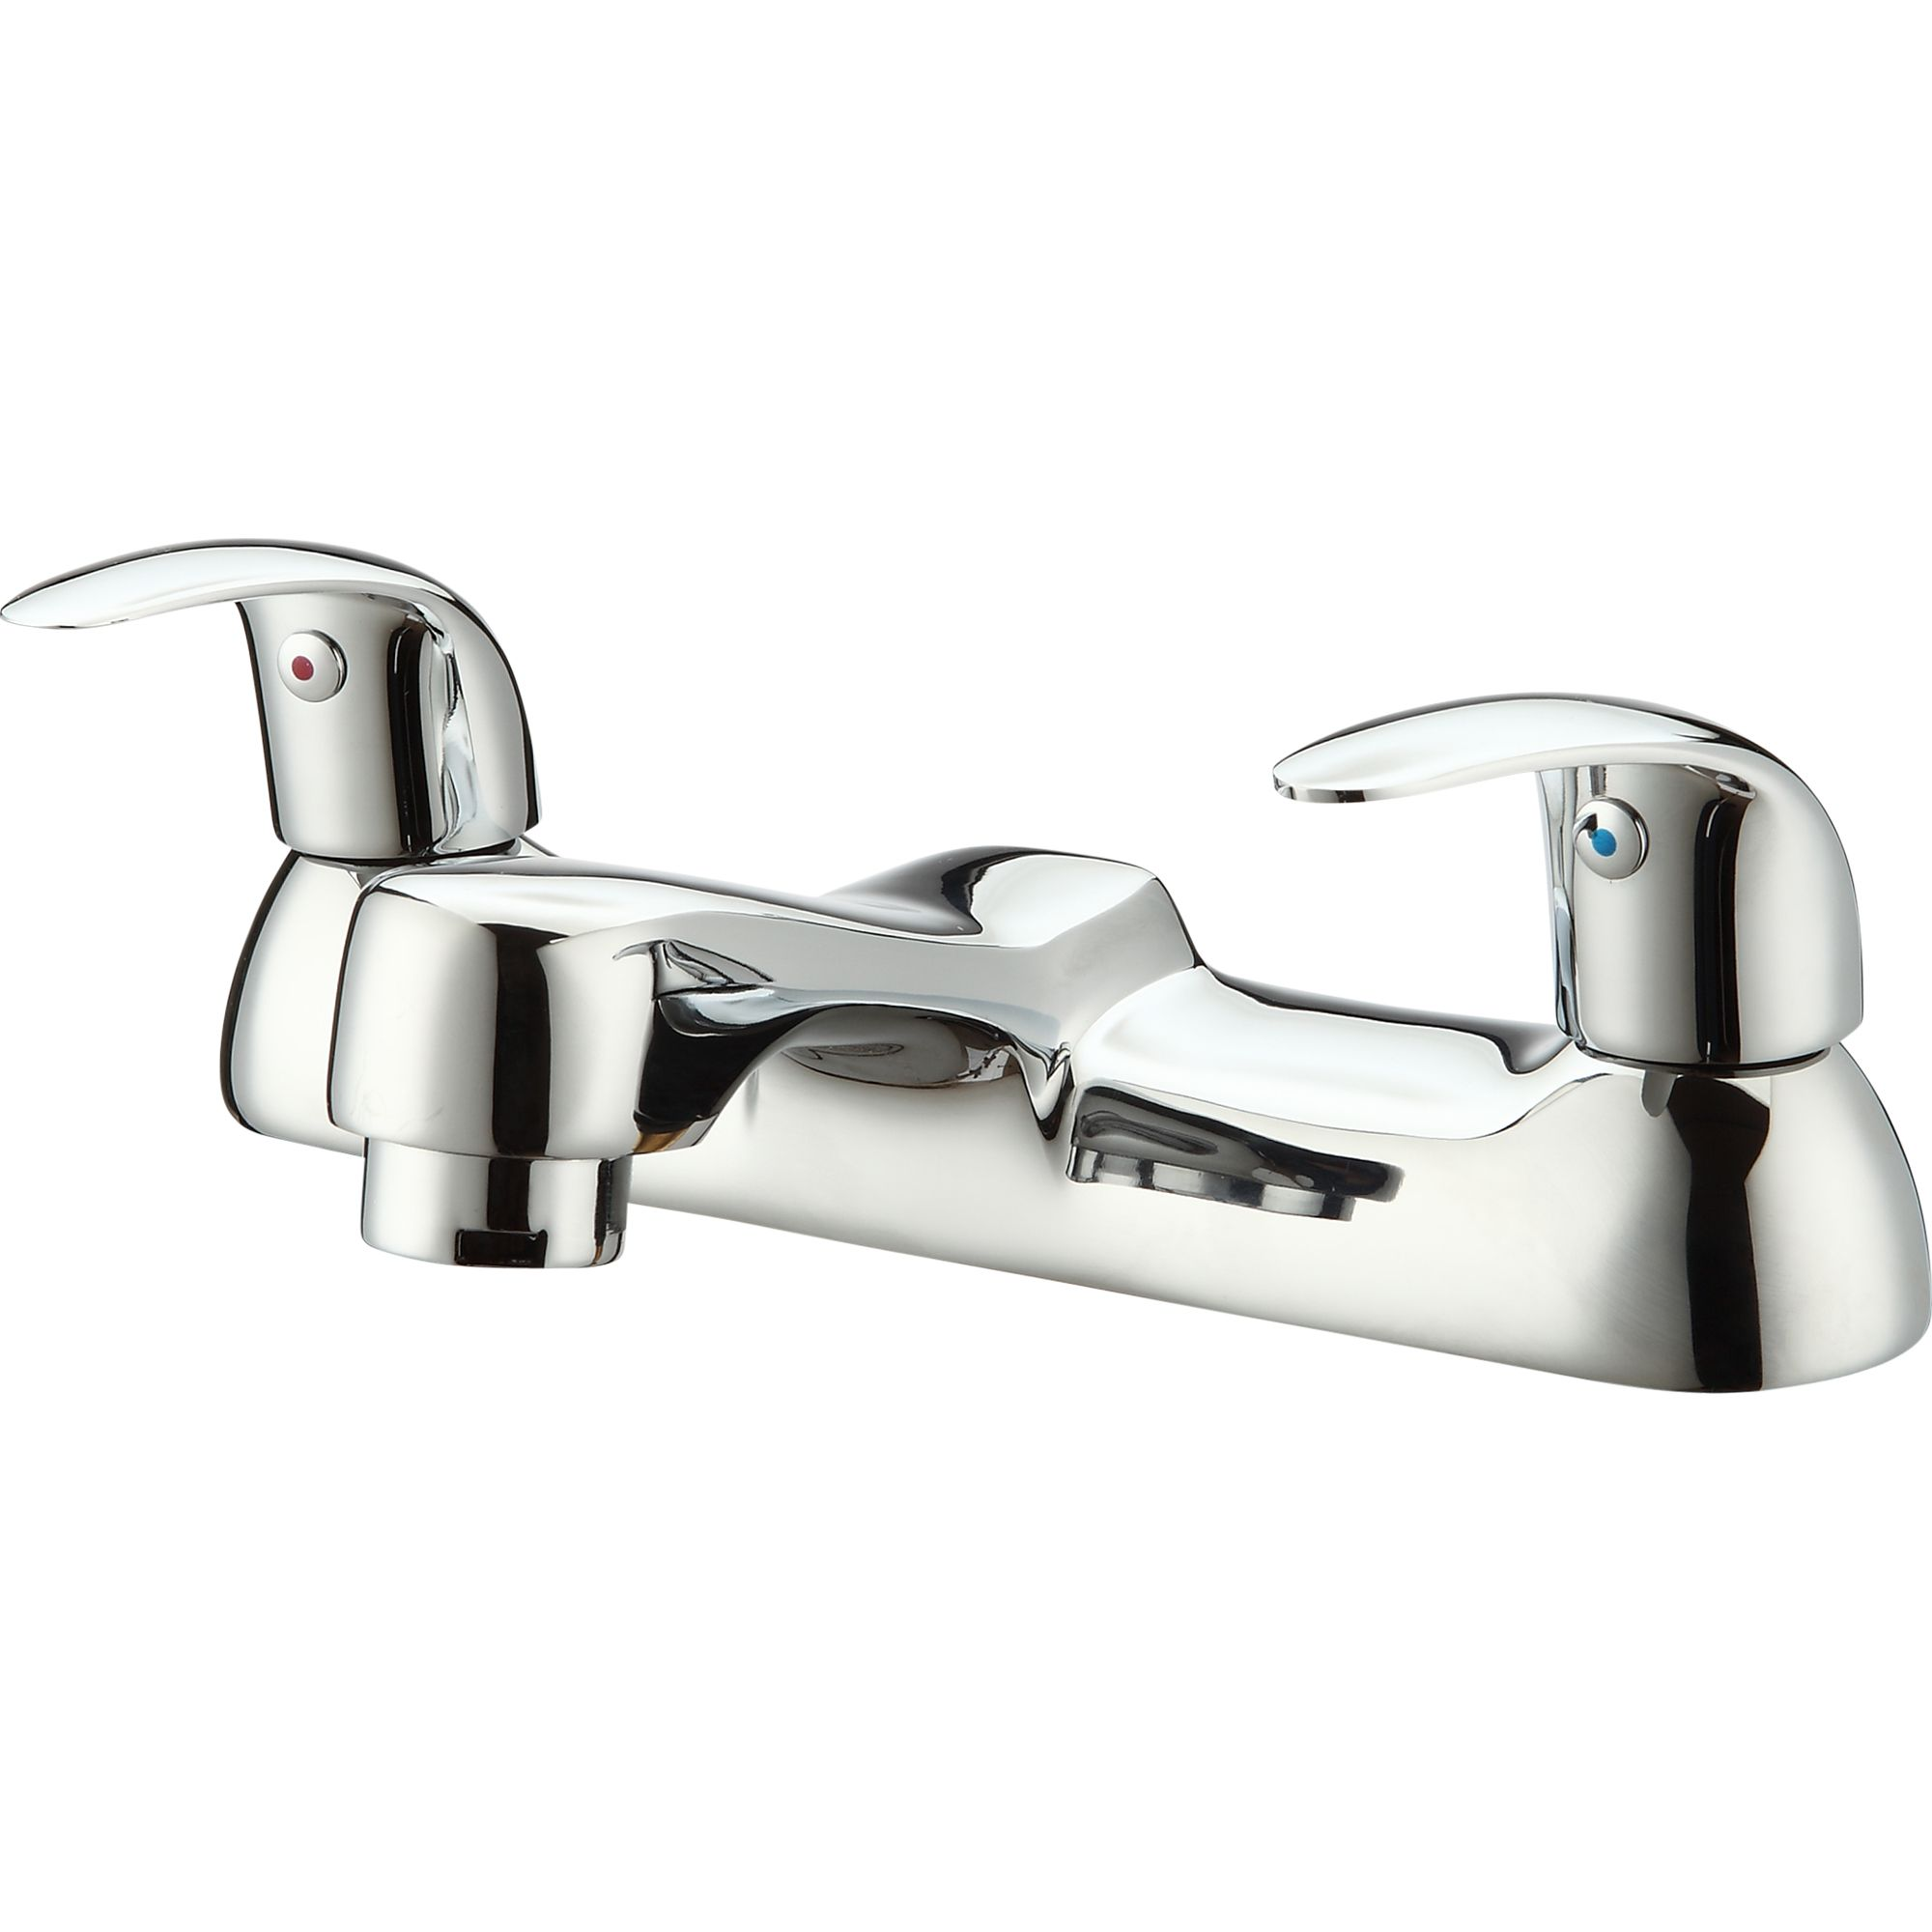 GoodHome Blyth Chrome plated Bath Mixer Tap | Departments ...